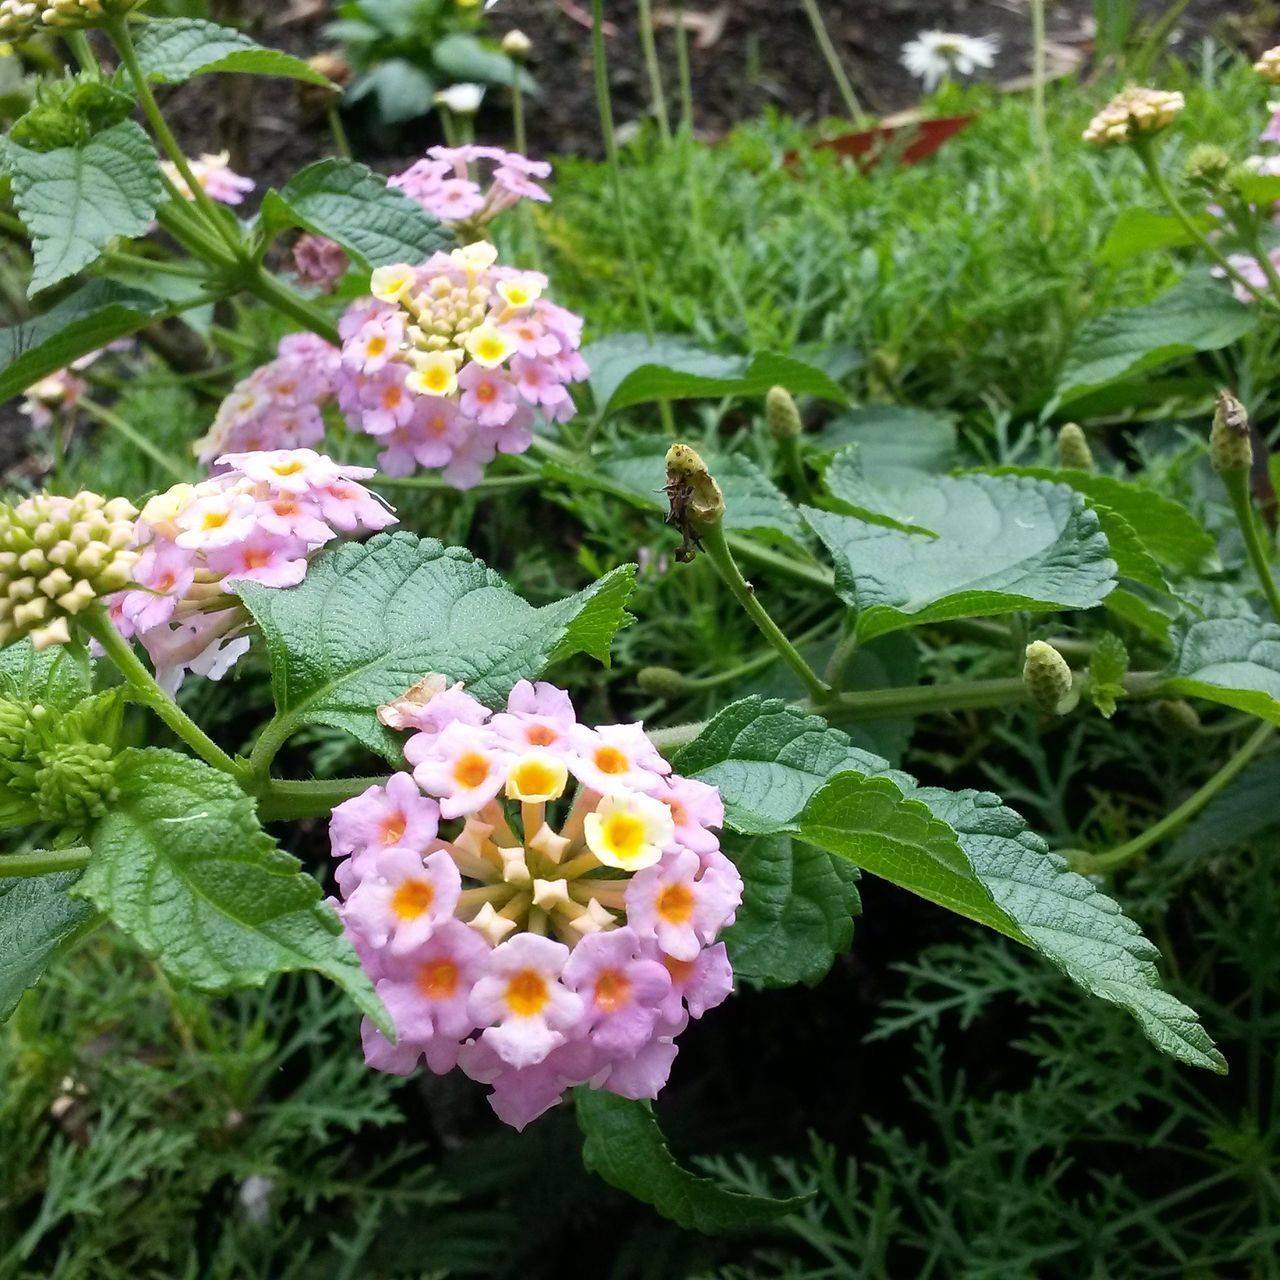 Flowers Flower Freshness Nature Plant Beauty In Nature Flower Head Green Color No People